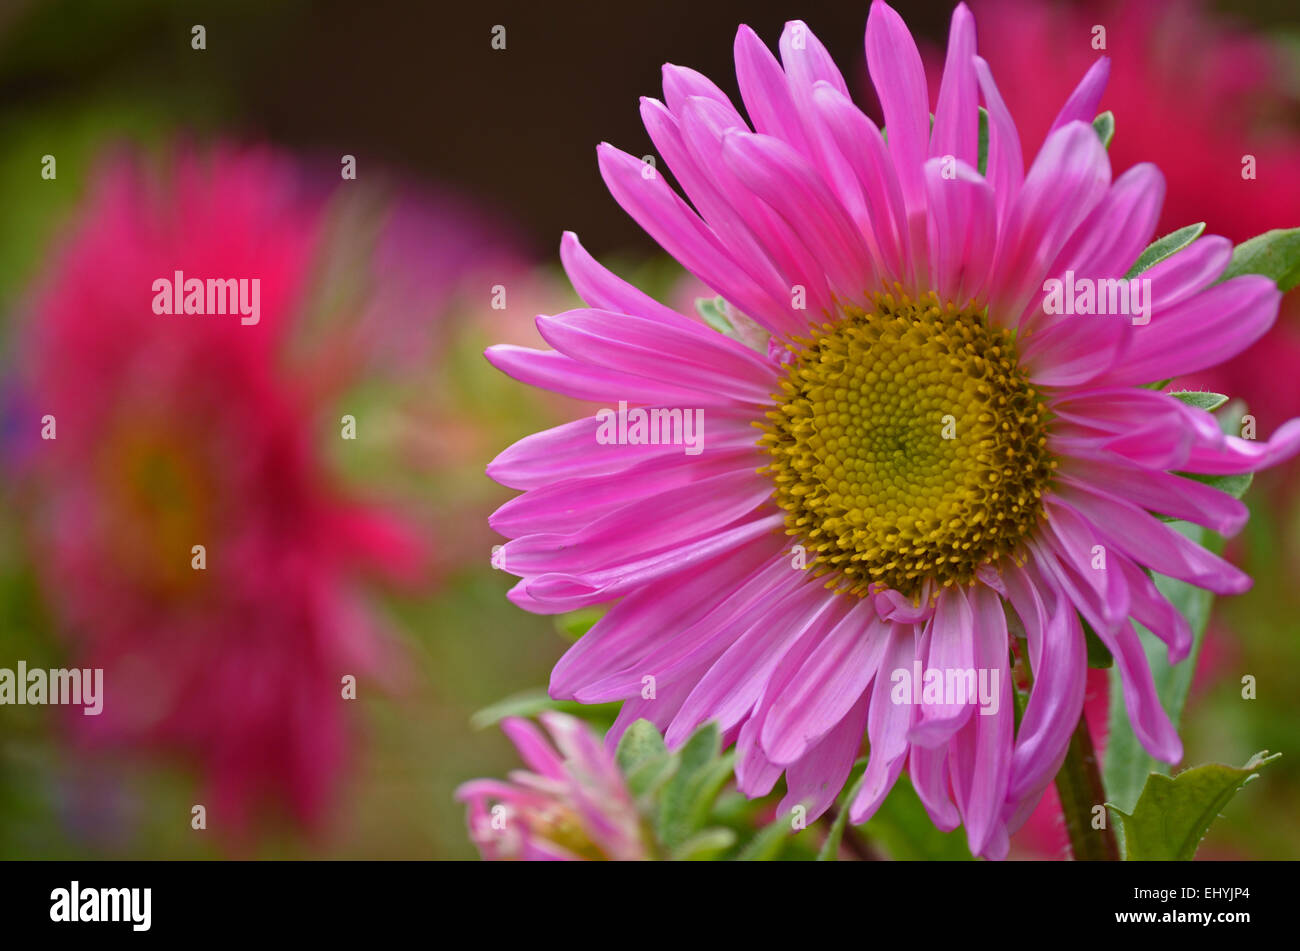 aster flower with pink petals at botanical garden in stock photo, Beautiful flower